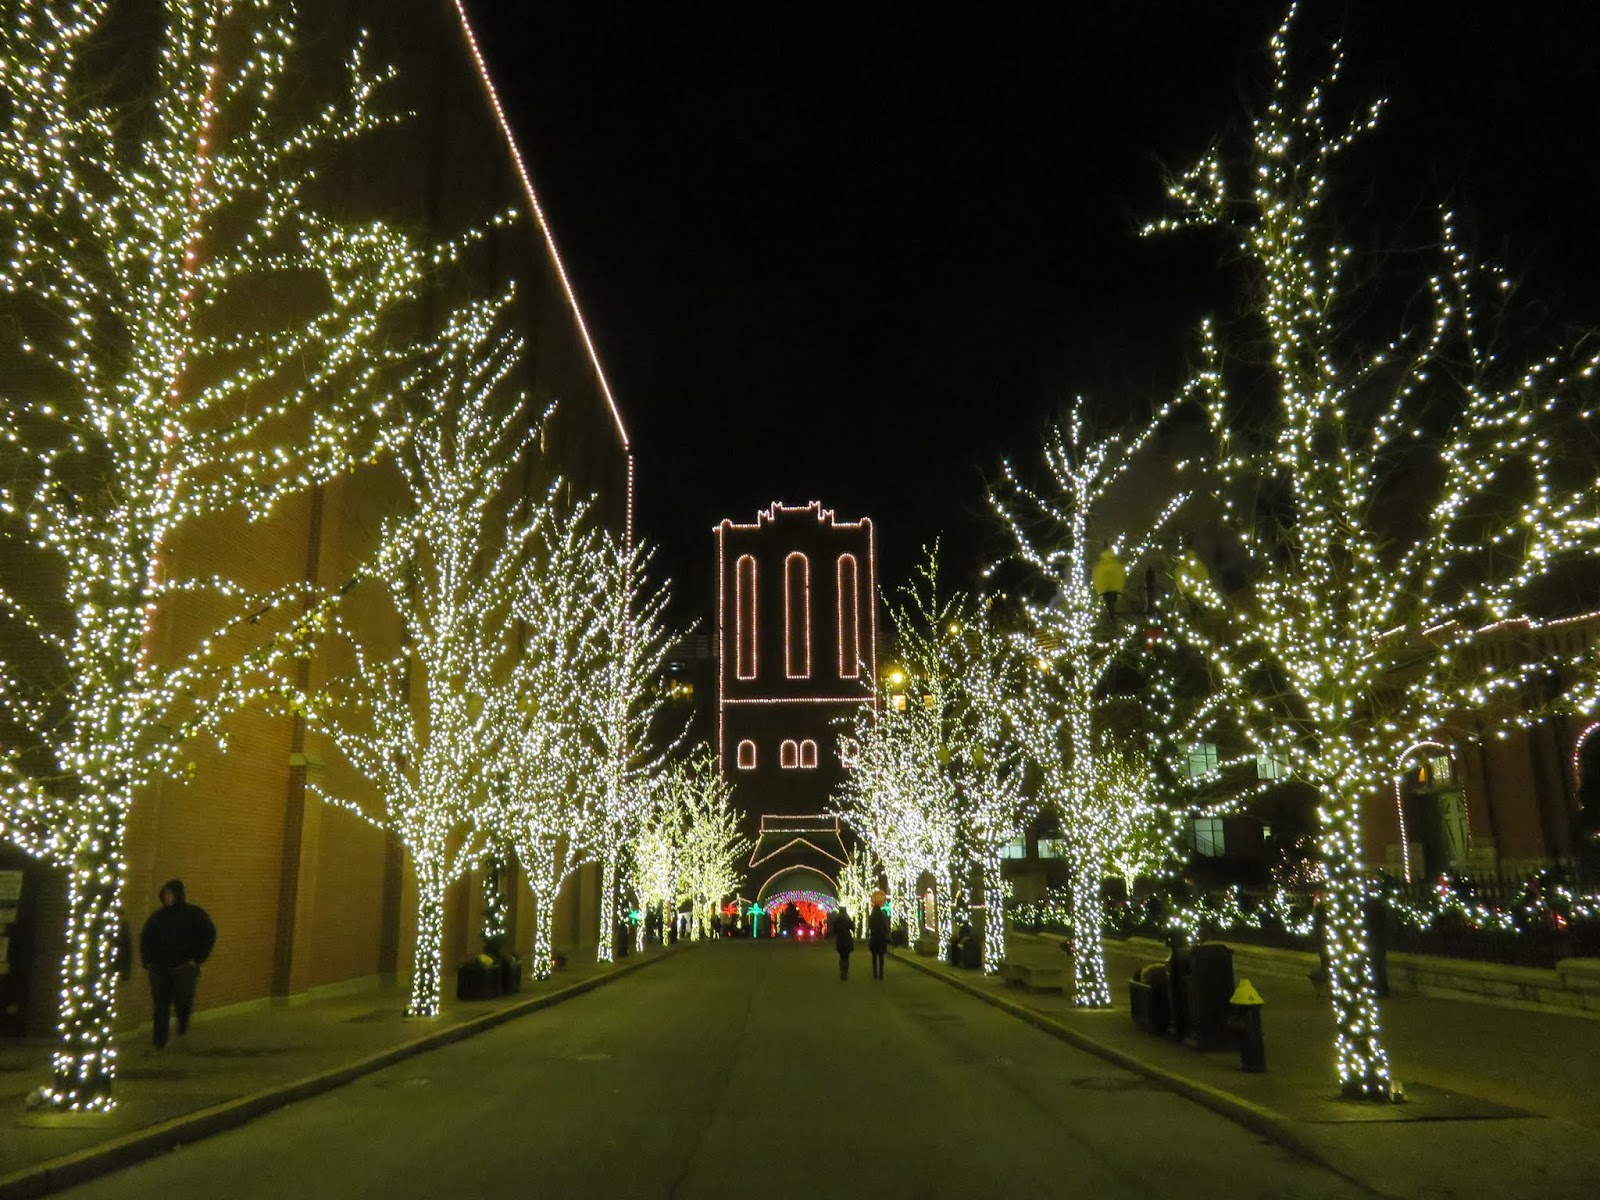 ... The Brewery Complex, As Well As The Trees, Fences, Etc., Were All  Festooned With Thousands And Thousands Of Lights! This Is An Annual Event  In St. Louis ...